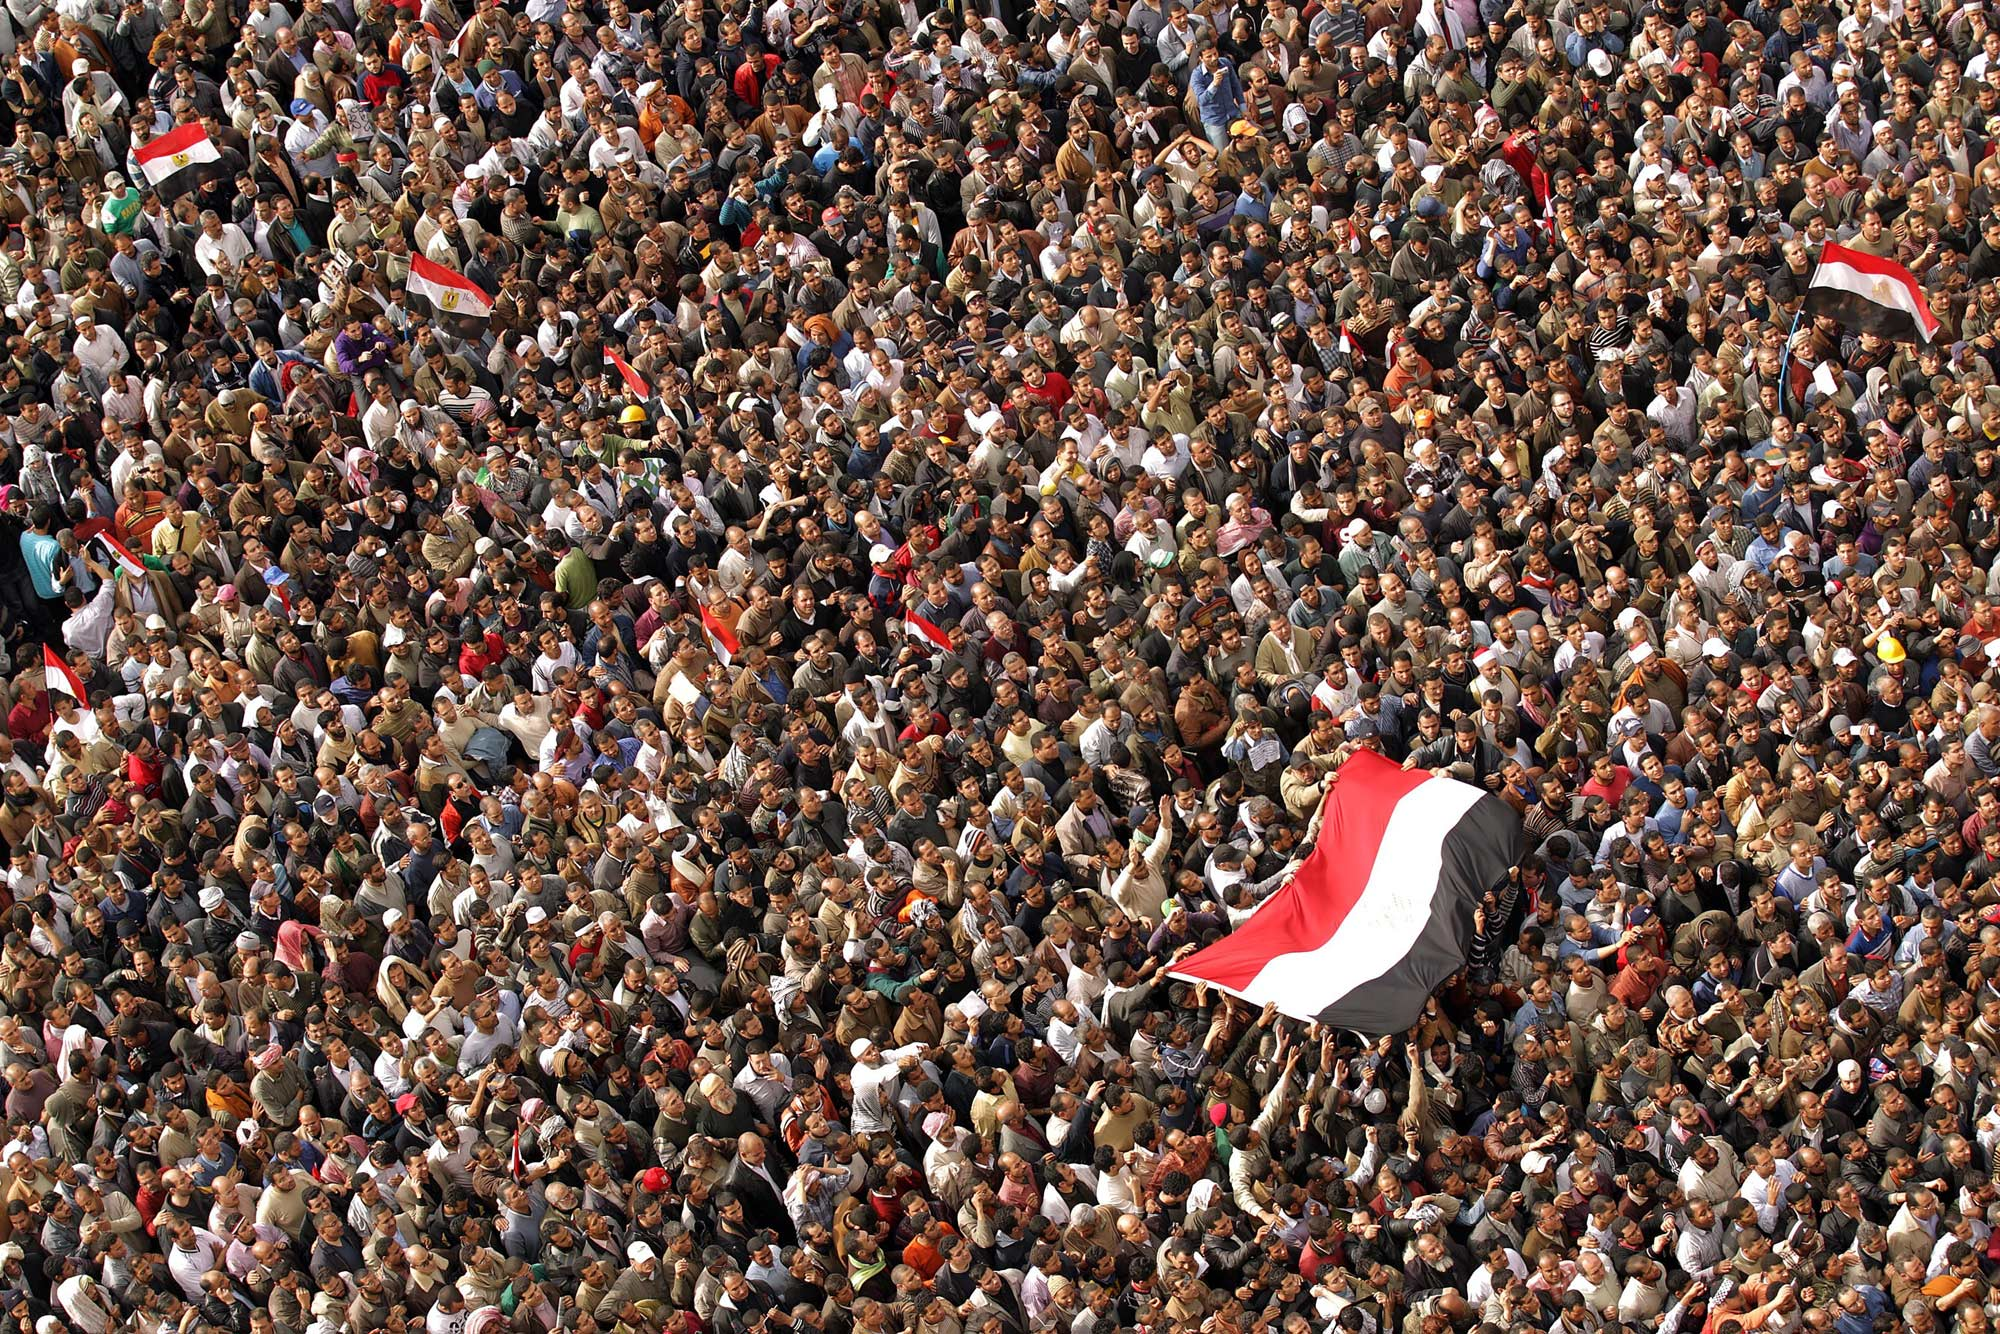 Democracy: A view from Cairo